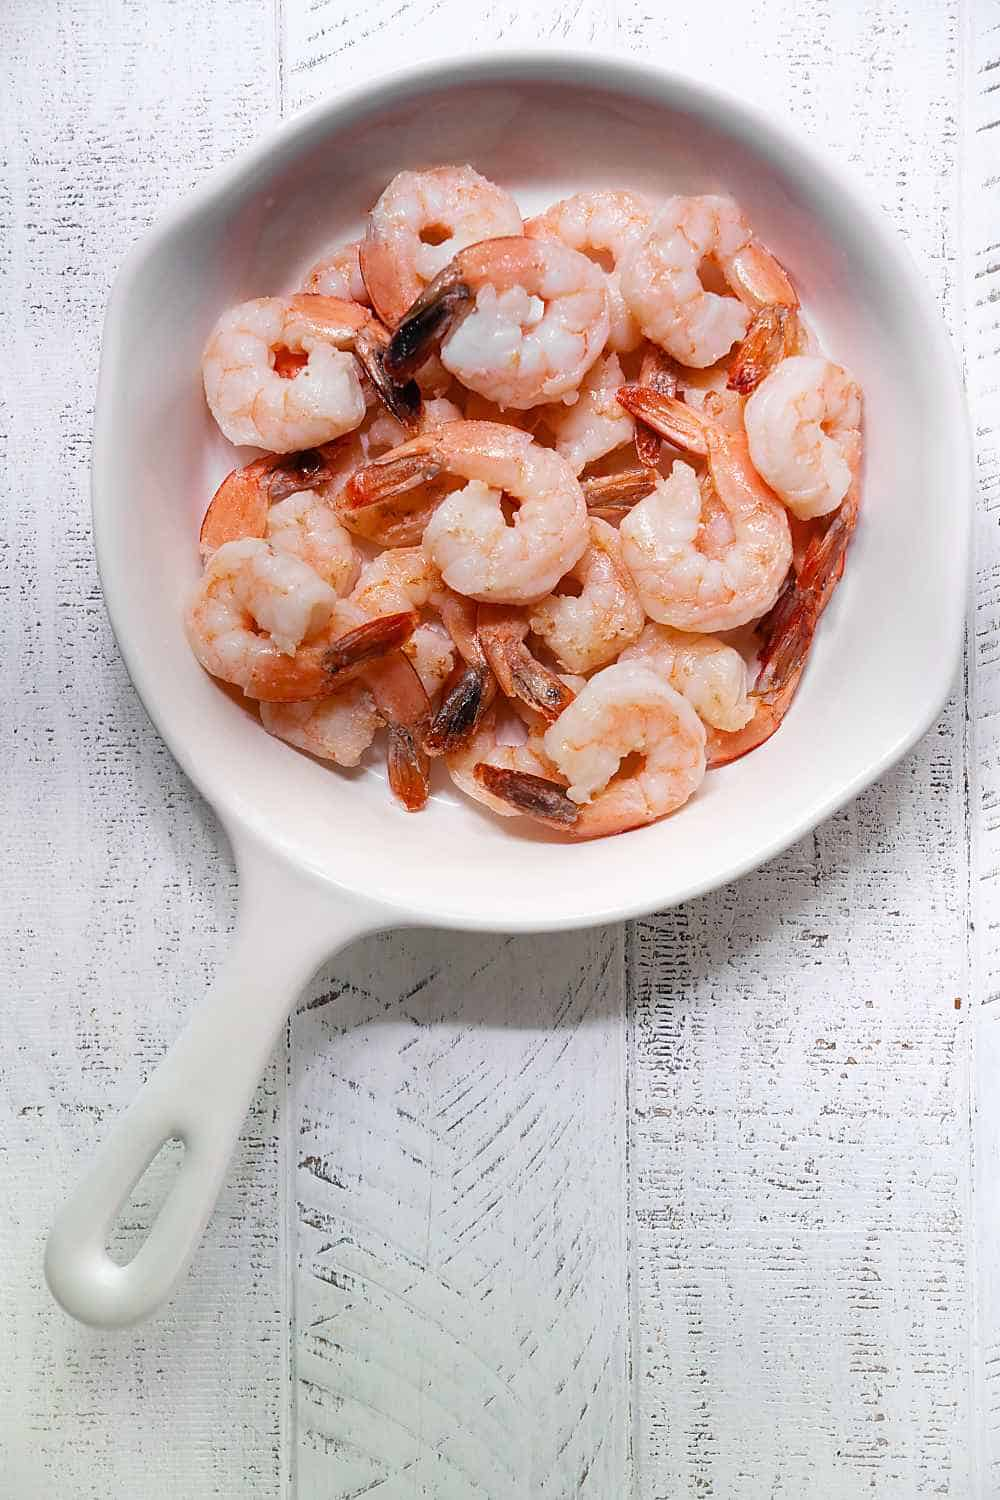 Sautéed Shrimp in a White Pan